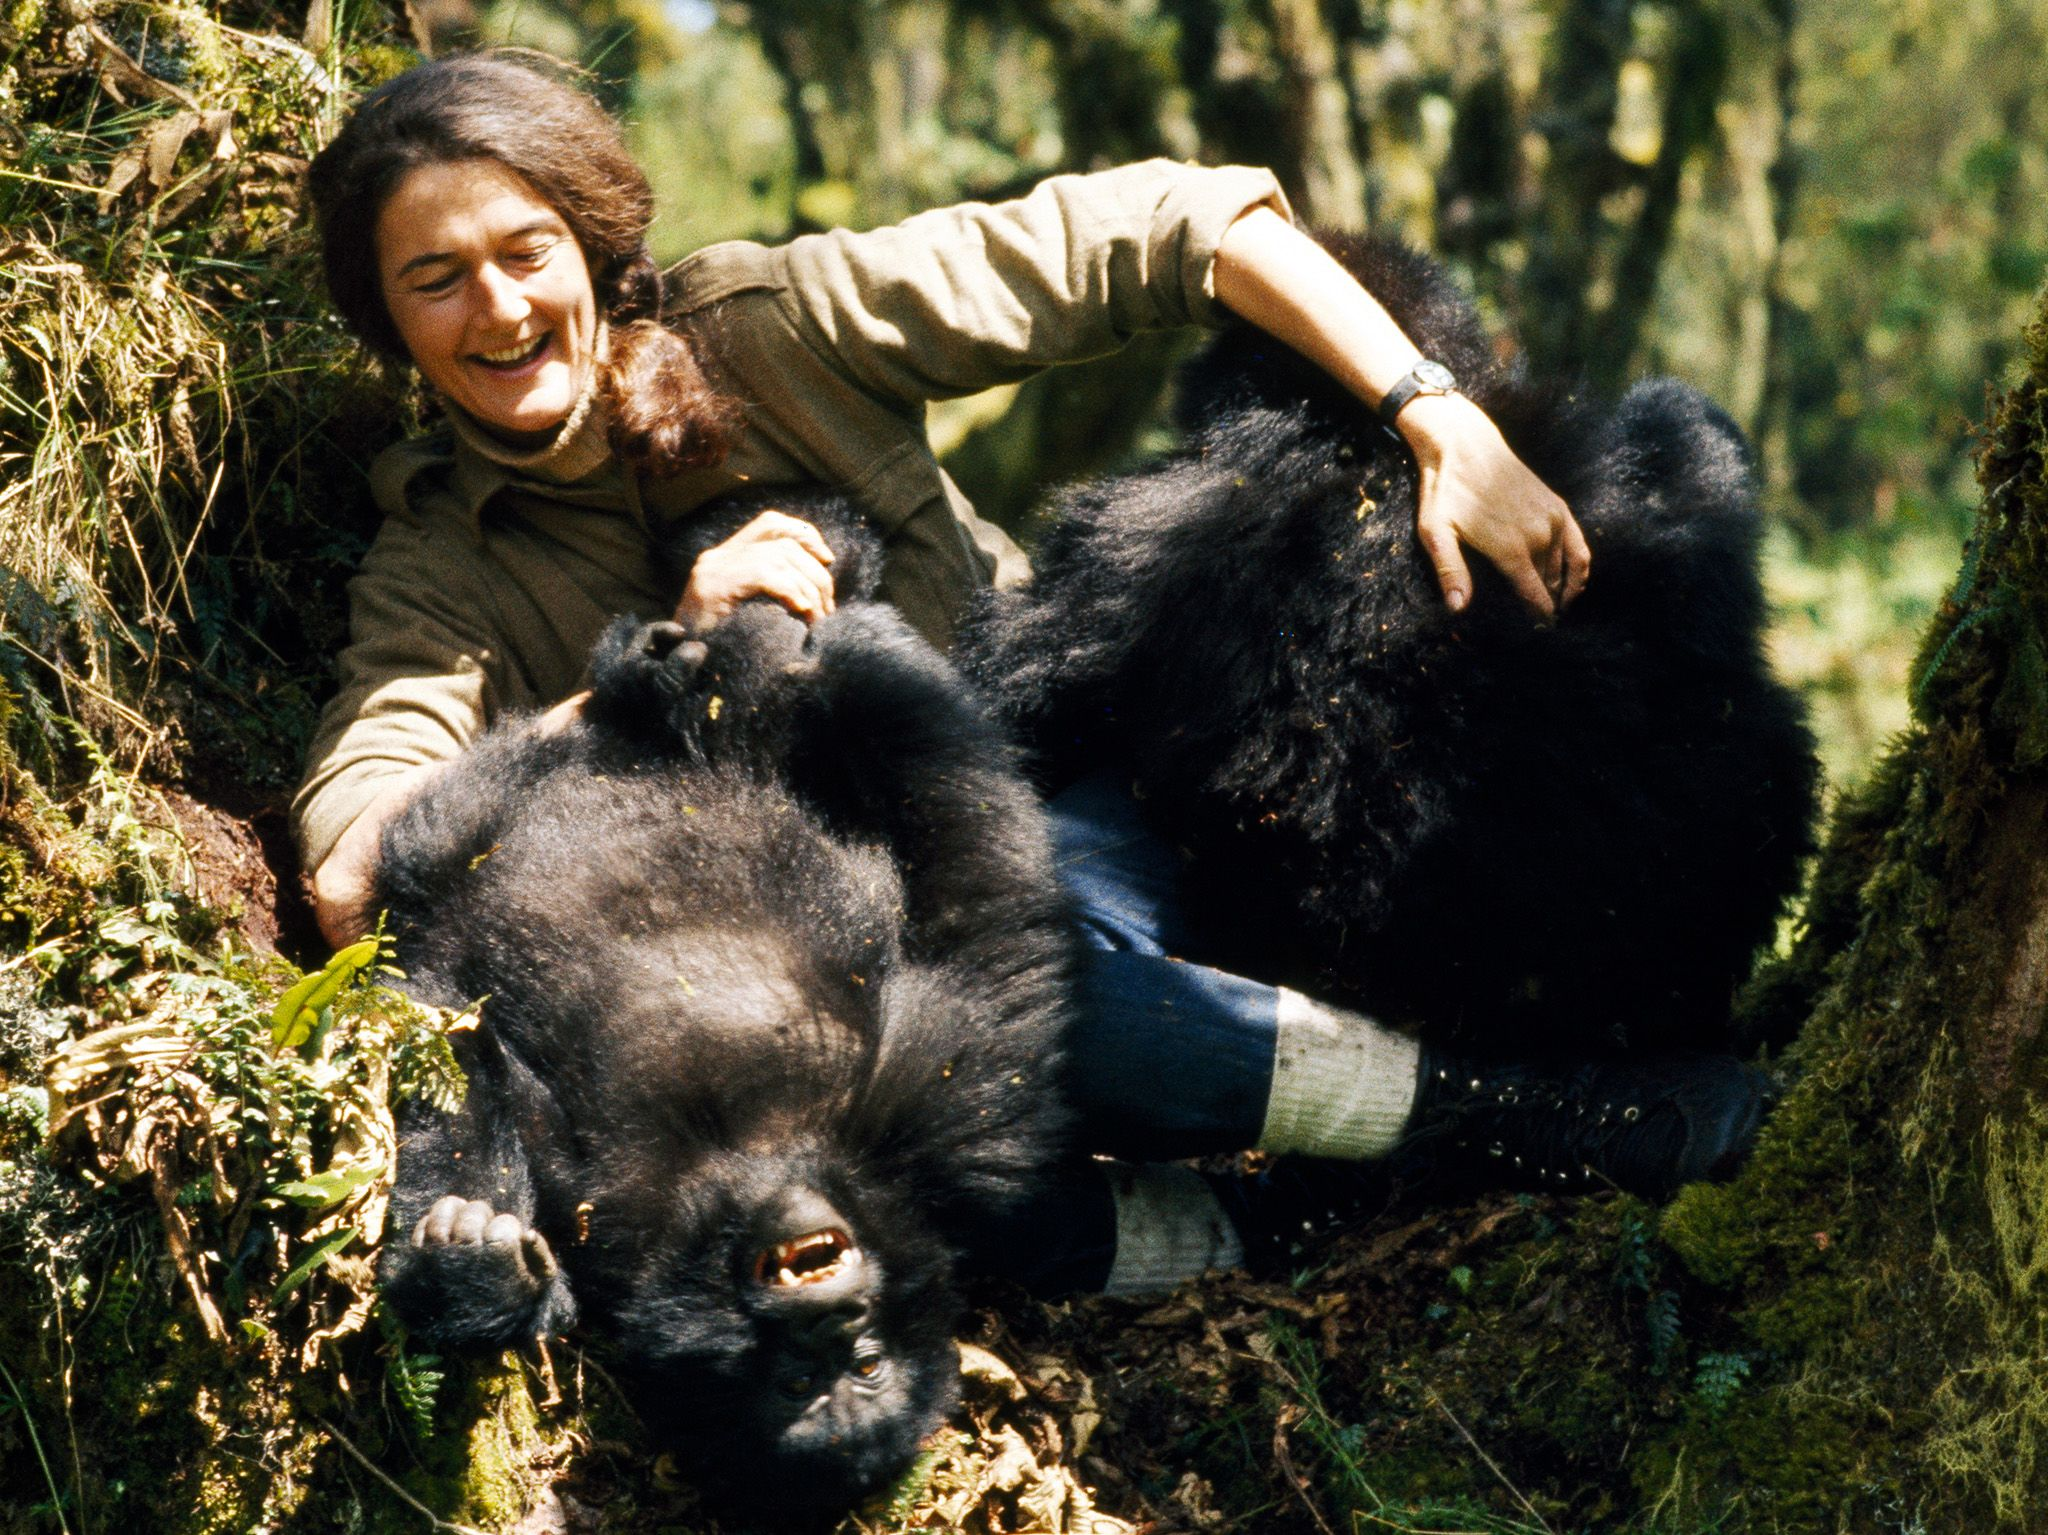 Dian Fossey plays with two young mountain gorillas in the wild. This image is from Dian Fossey:... [Photo of the day - December 2017]